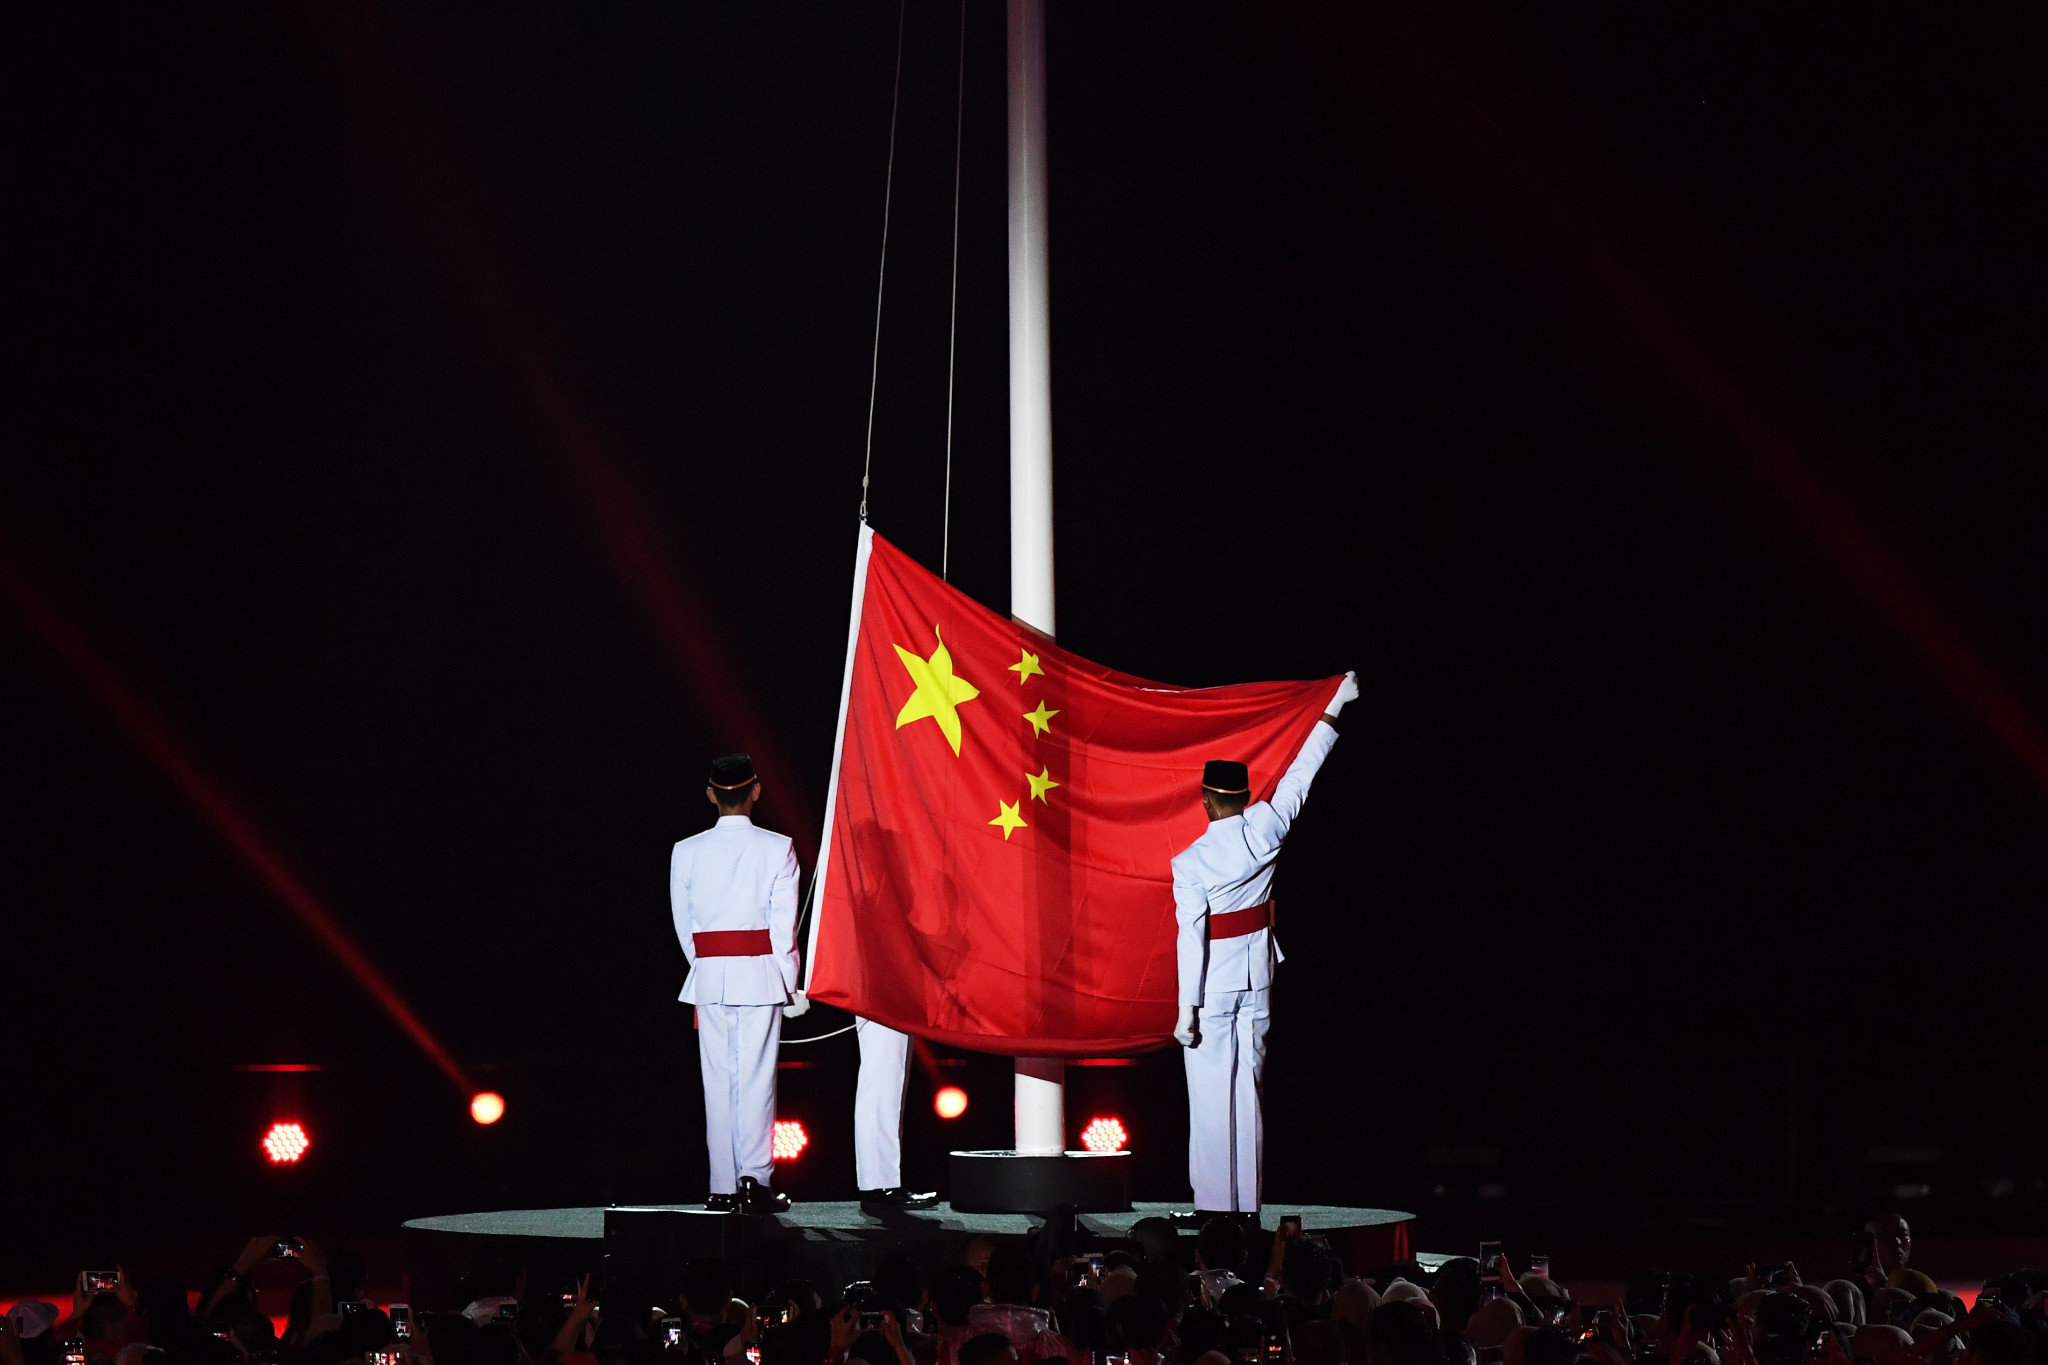 The Chinese national flag was hoisted as part of proceedings ©Getty Images